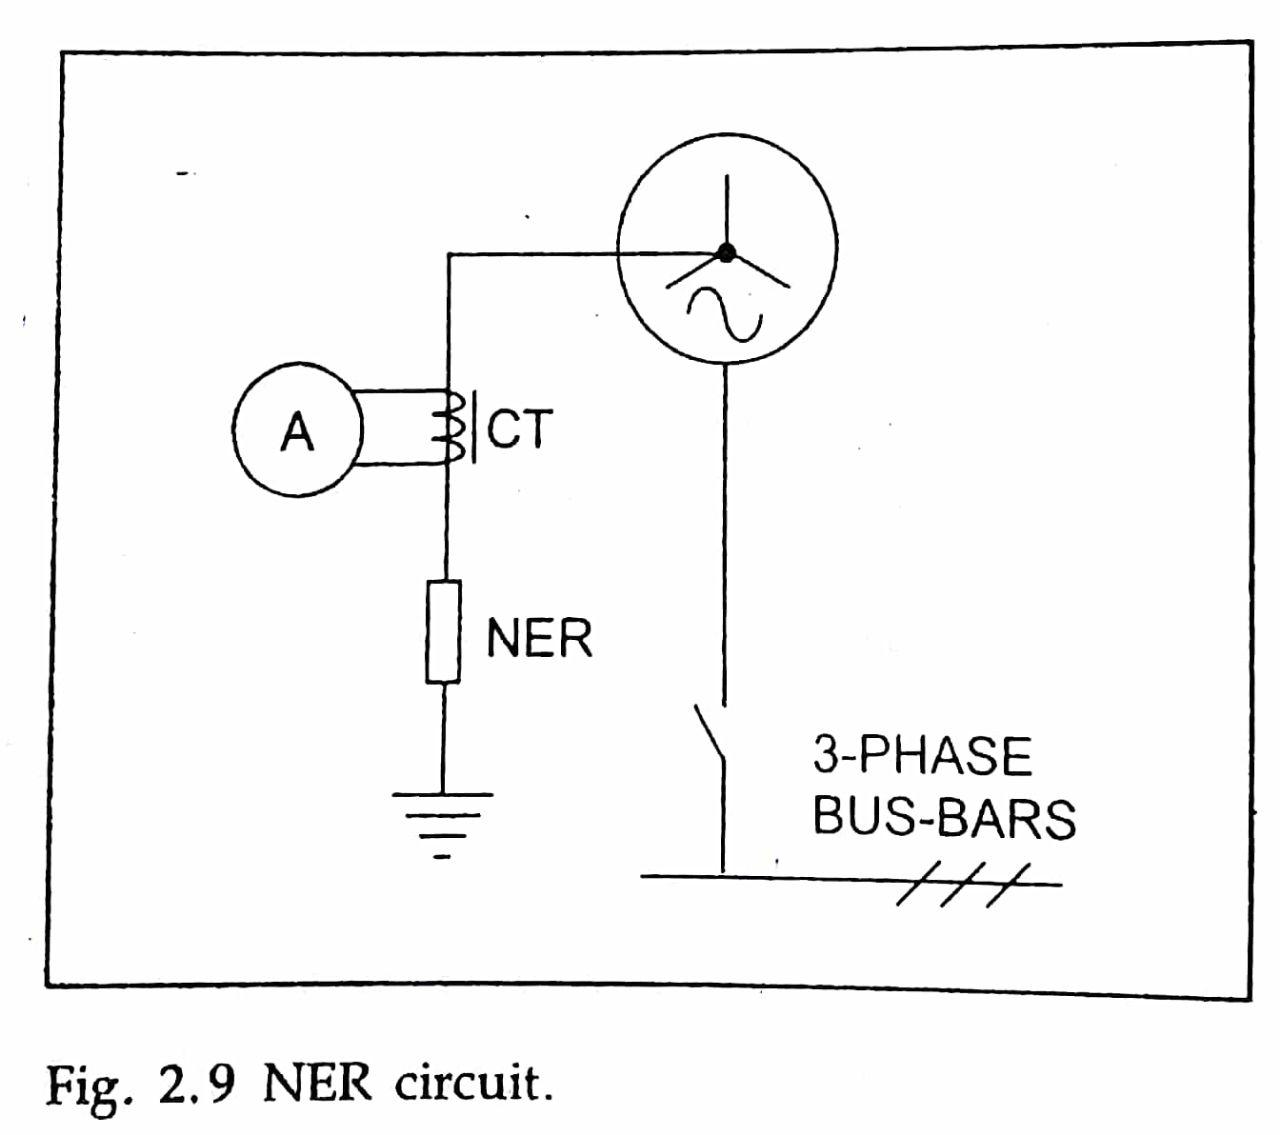 hight resolution of  be provided using current transformer ct if motor is healthy phasor sum of current measured by ct is zero if an earth fault occurs in motor phasor sum